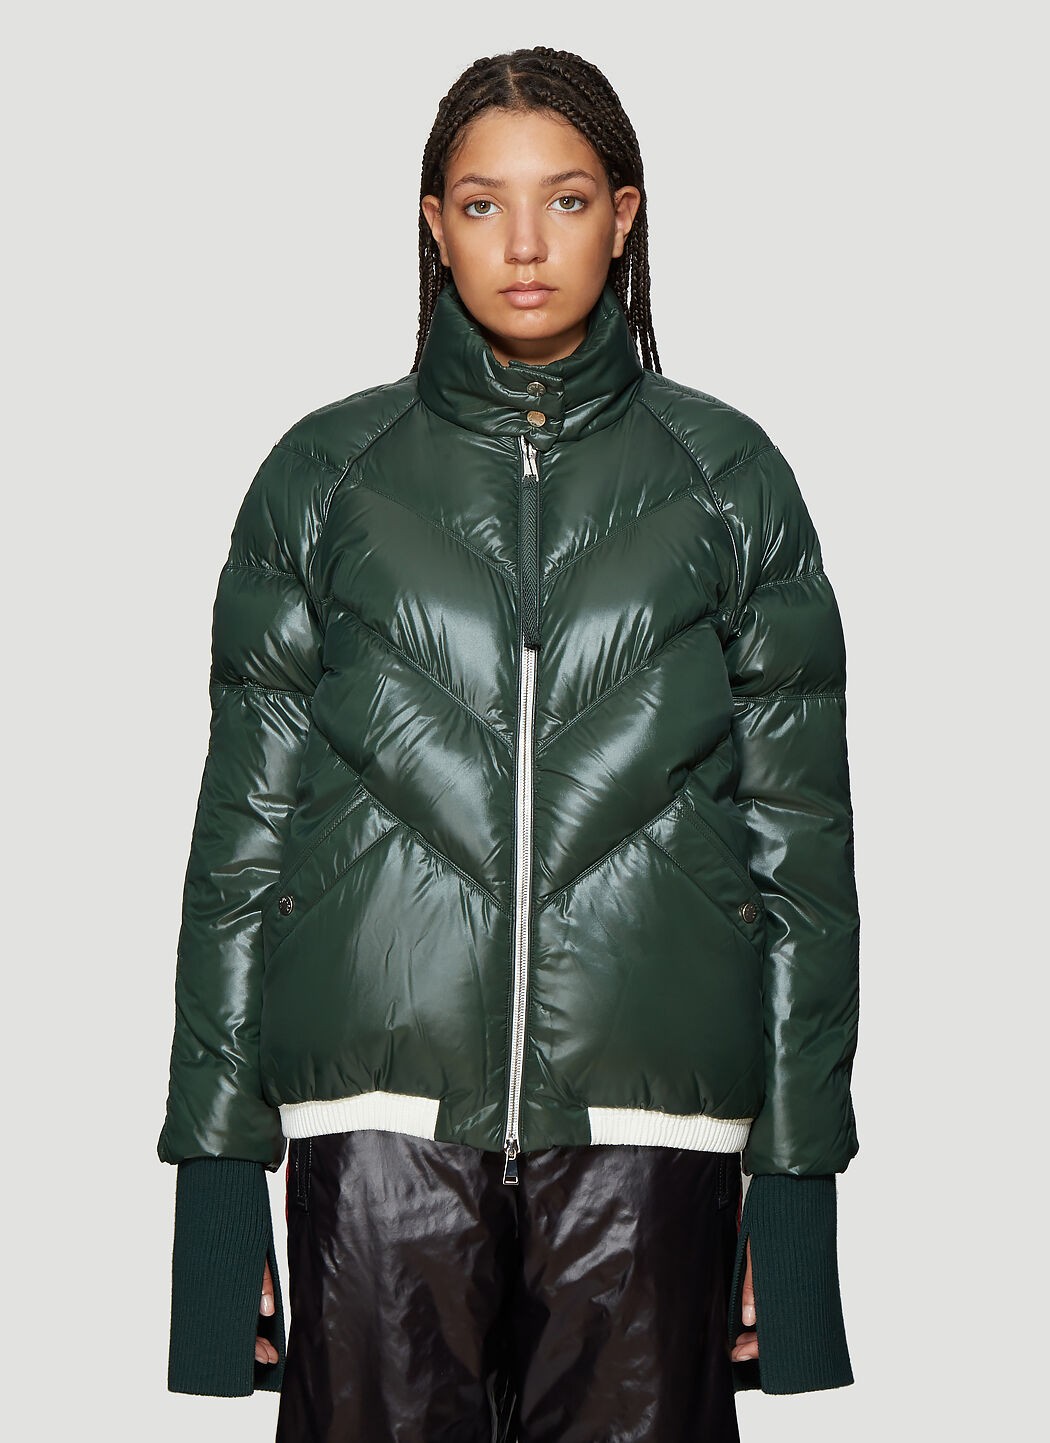 Moncler Genius 1952 Padded Down Jacket in Green | LN CC